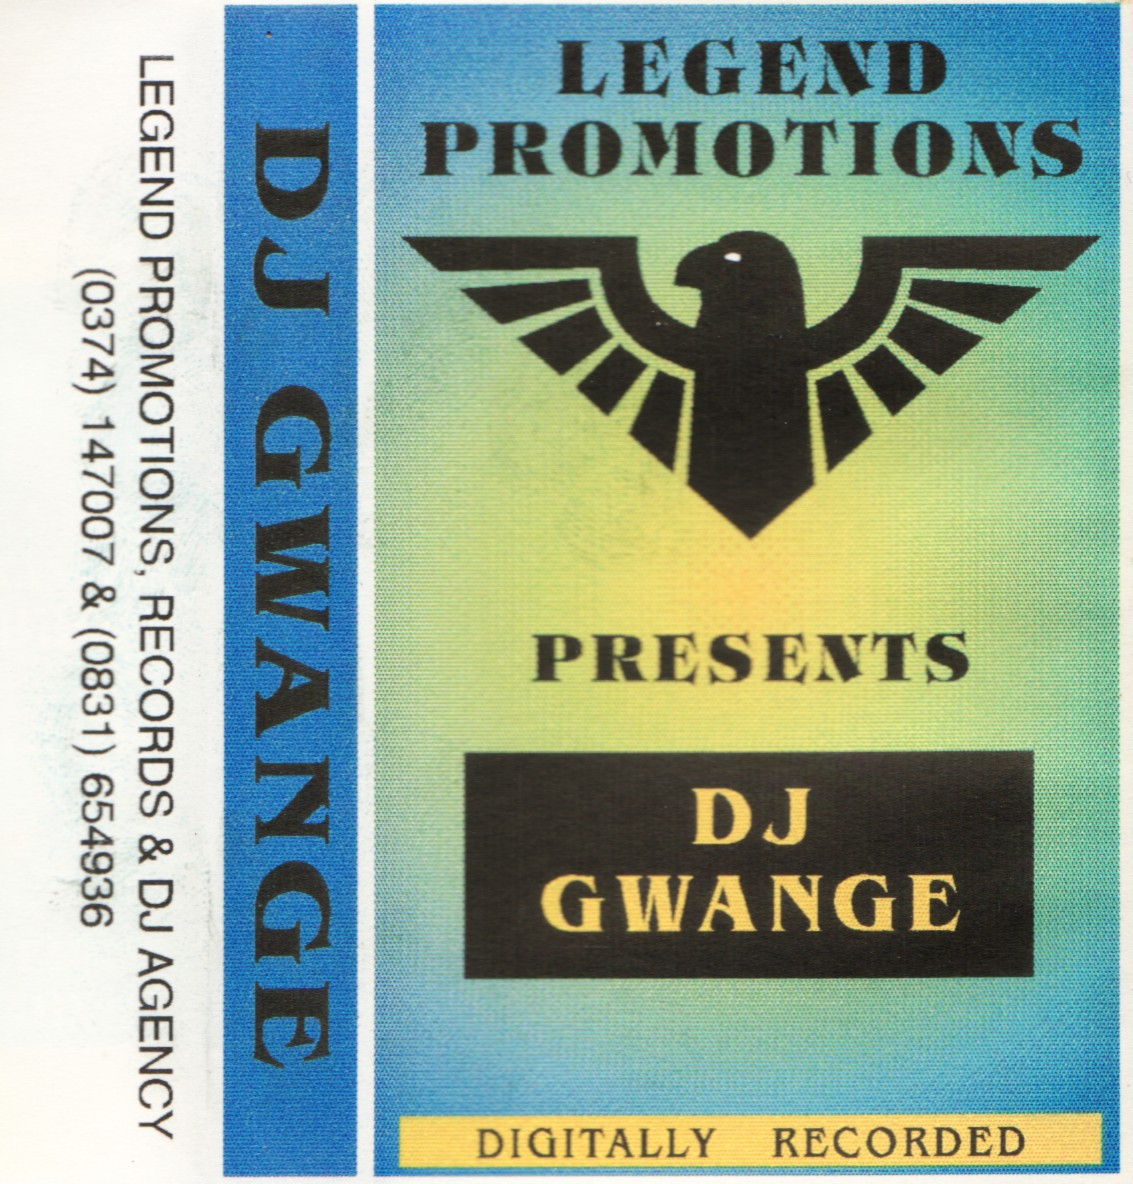 DJ Gwange - New Creation / Vinyl Paradise